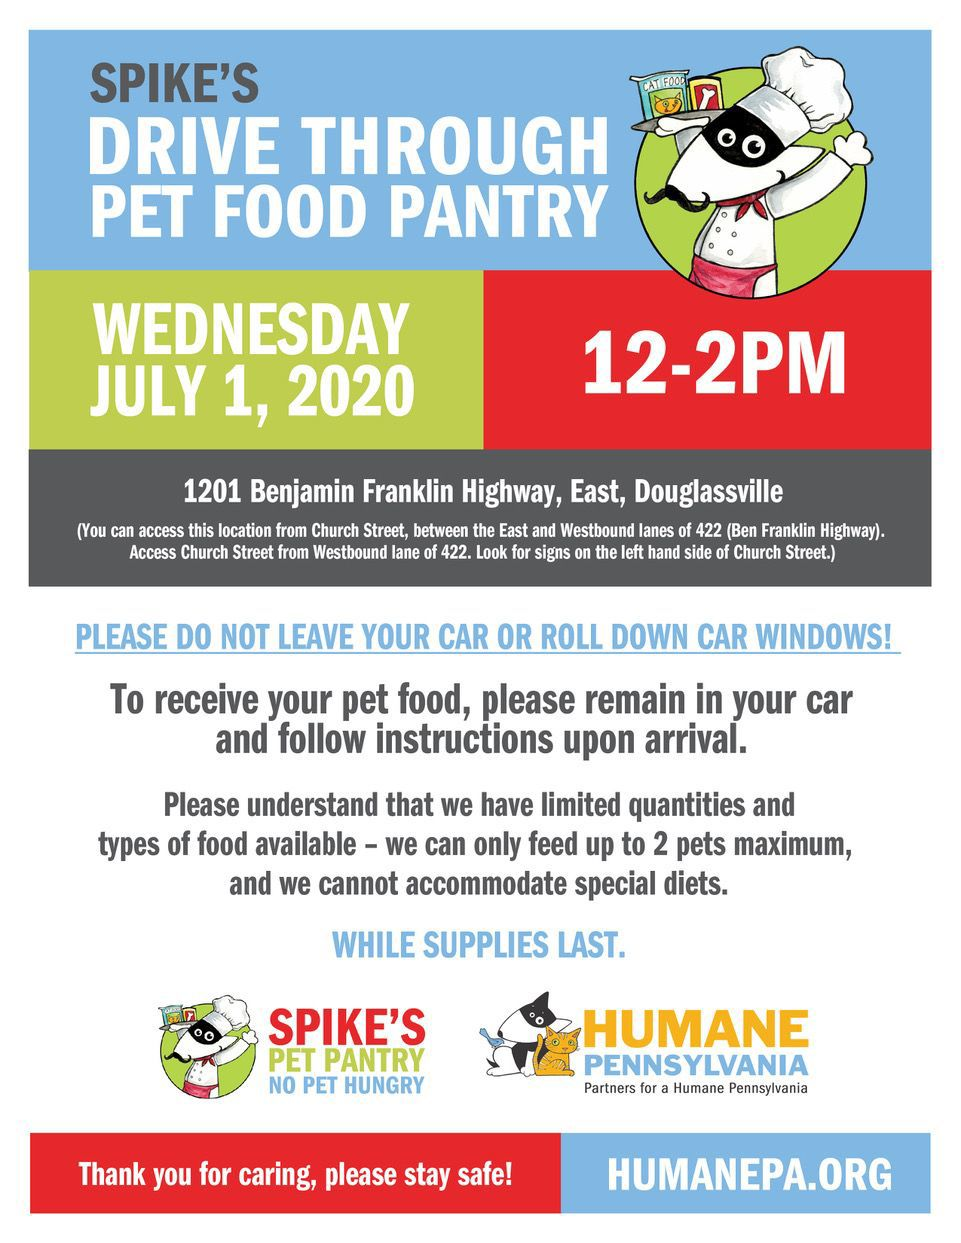 Spike's Pet Pantry poster